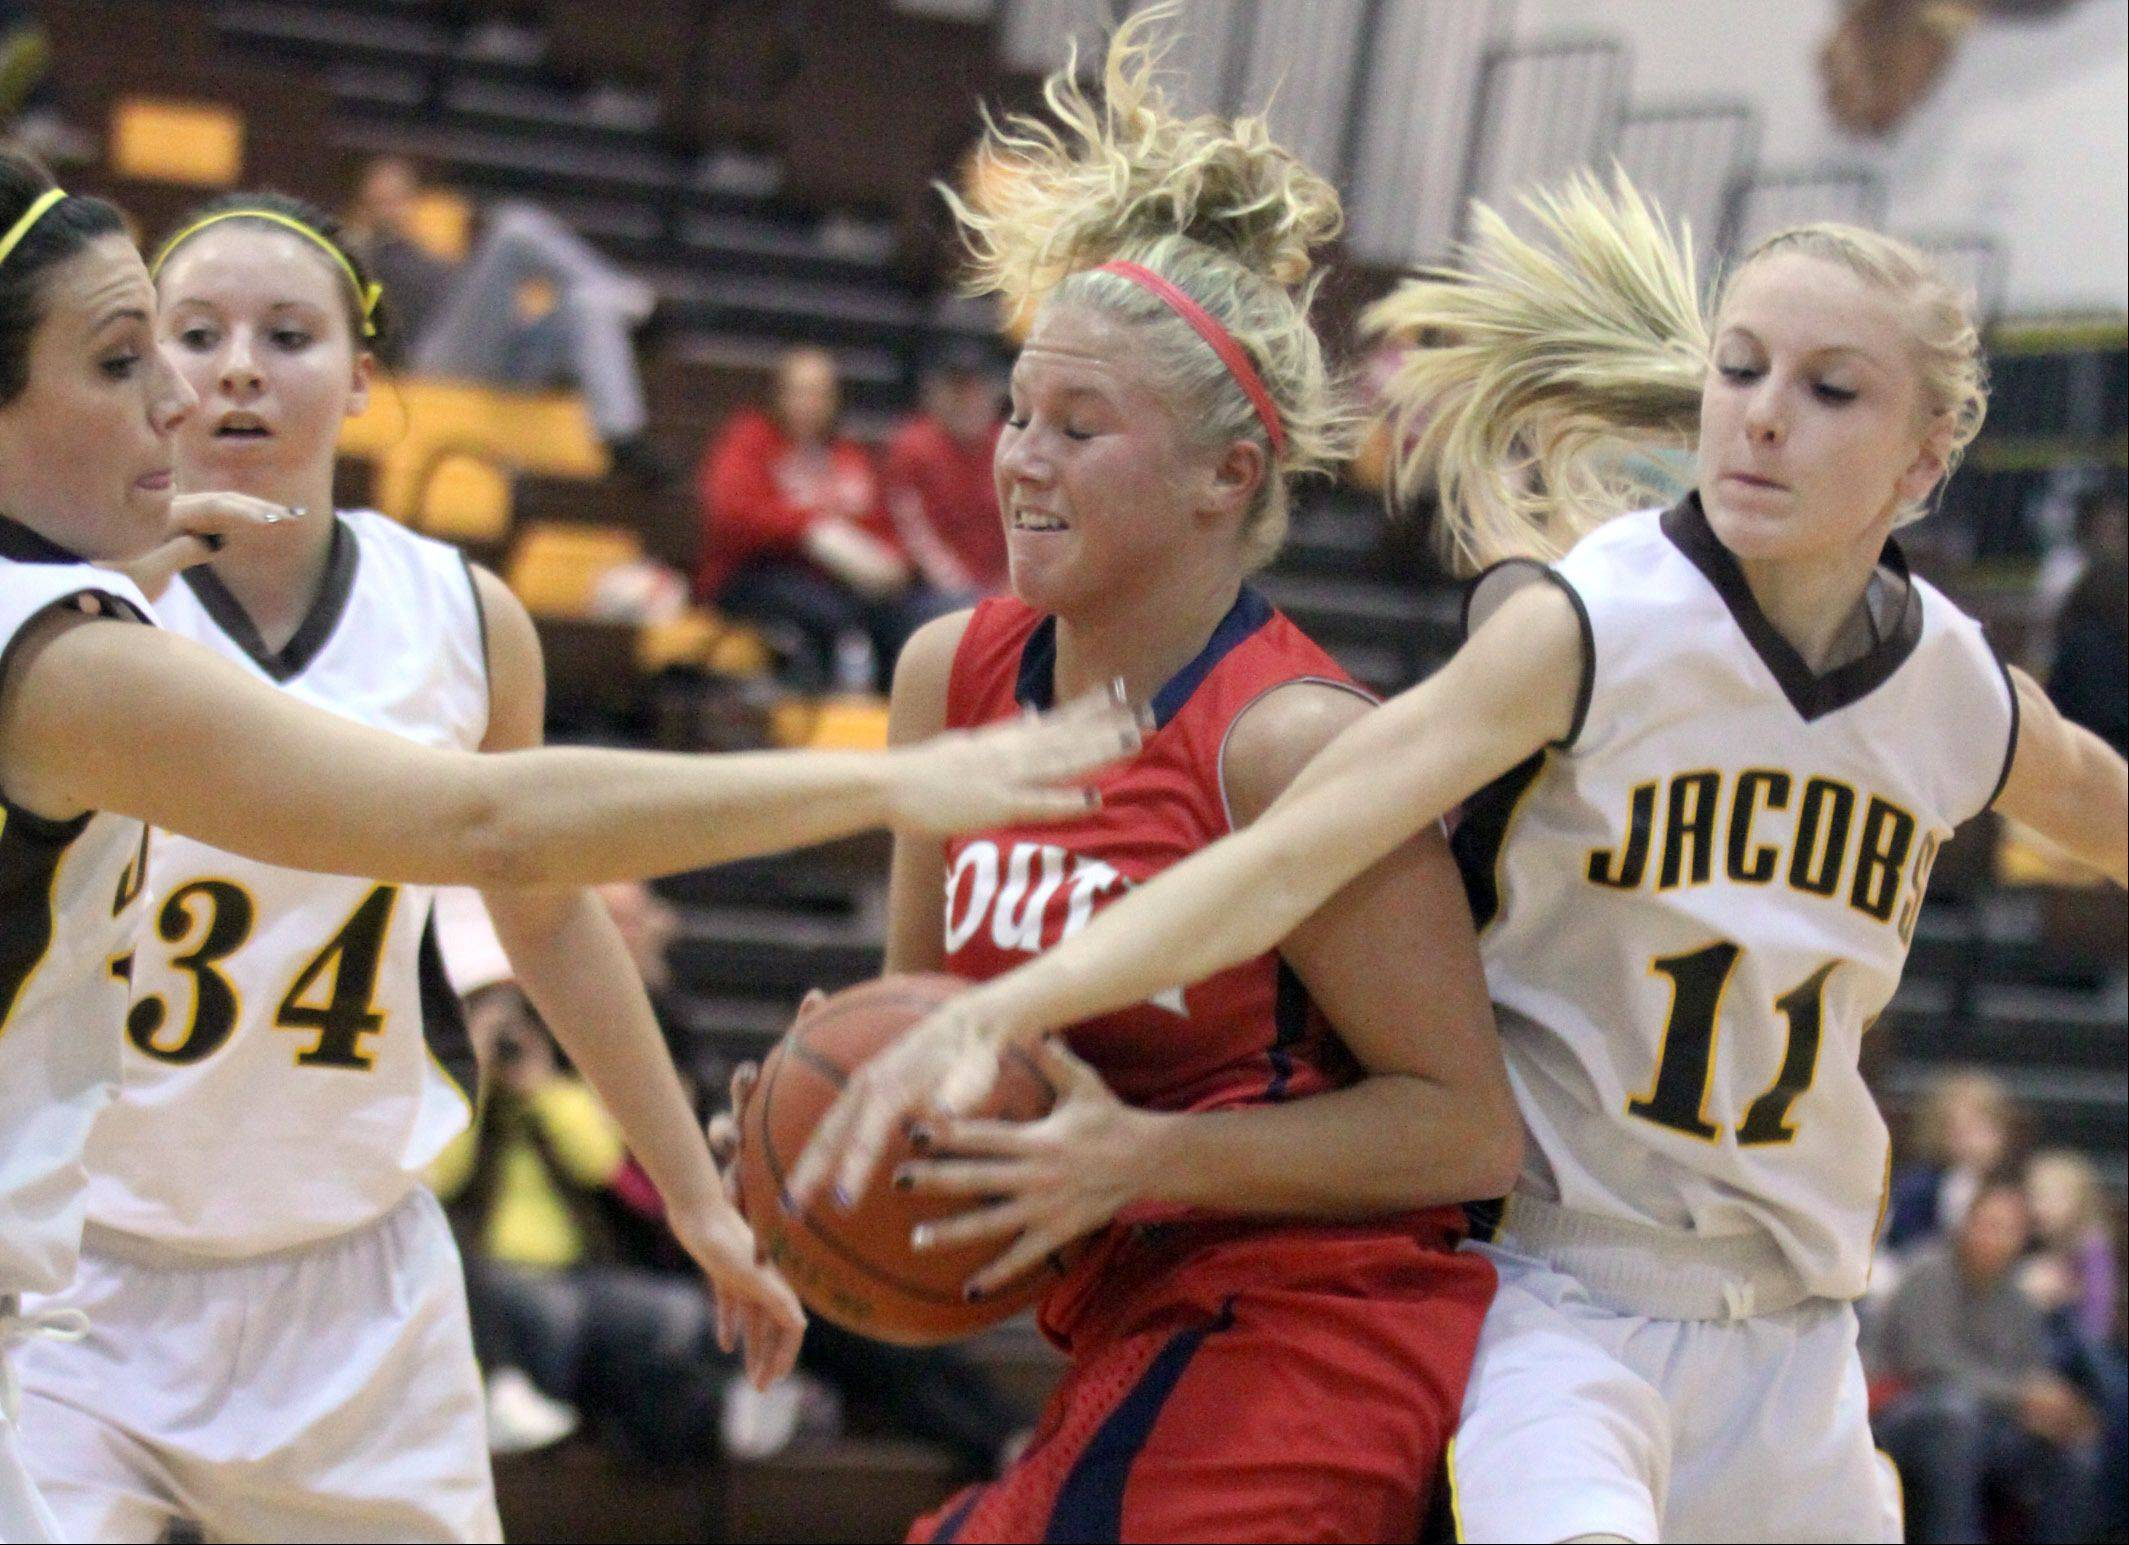 Jacobs' Payton Berg, left, and Lauren Van Vlierbergen try to stop the progress of South Elgin's Kara Rodriguez during nonconference girls basketball action in Algonquin on Tuesday night.